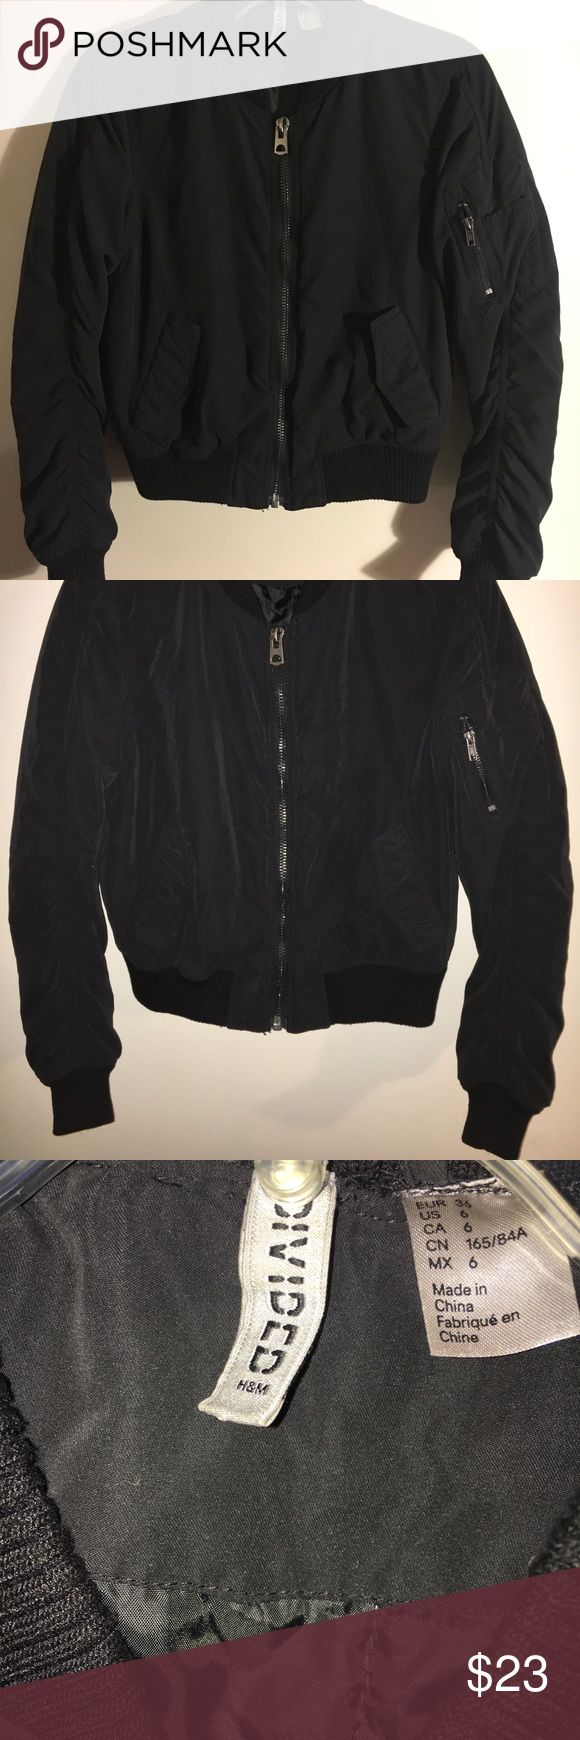 H&M divided Bomber jacket In great condition. All black H